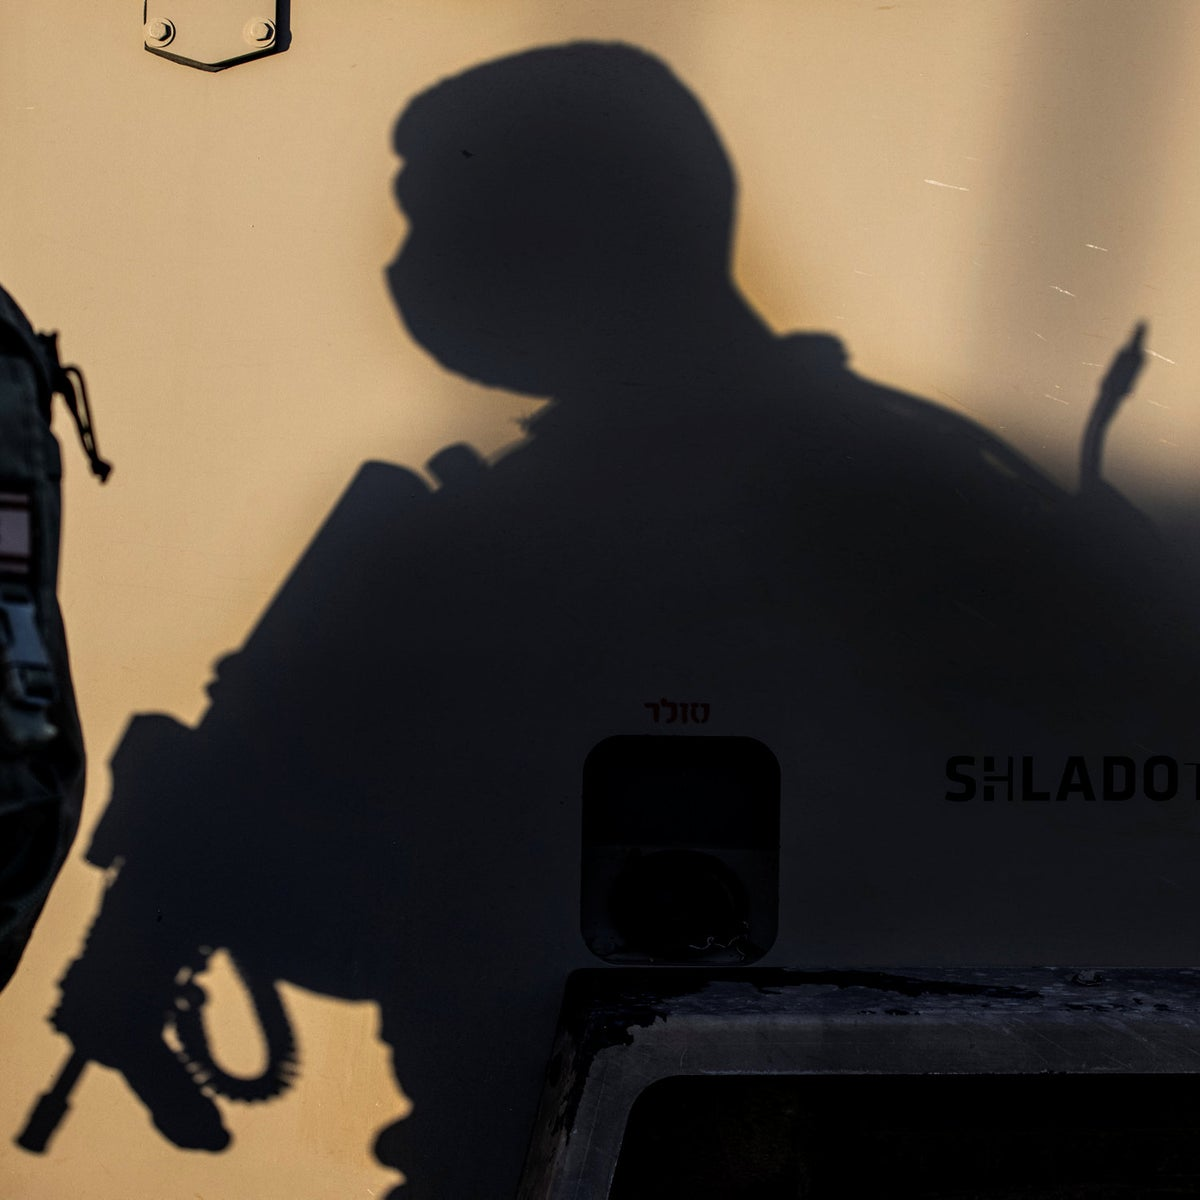 The shadow of an Israeli soldier wearing a face mask to help protect against the coronavirus, is cast onto the side of a vehicle, Jan. 21, 2021.